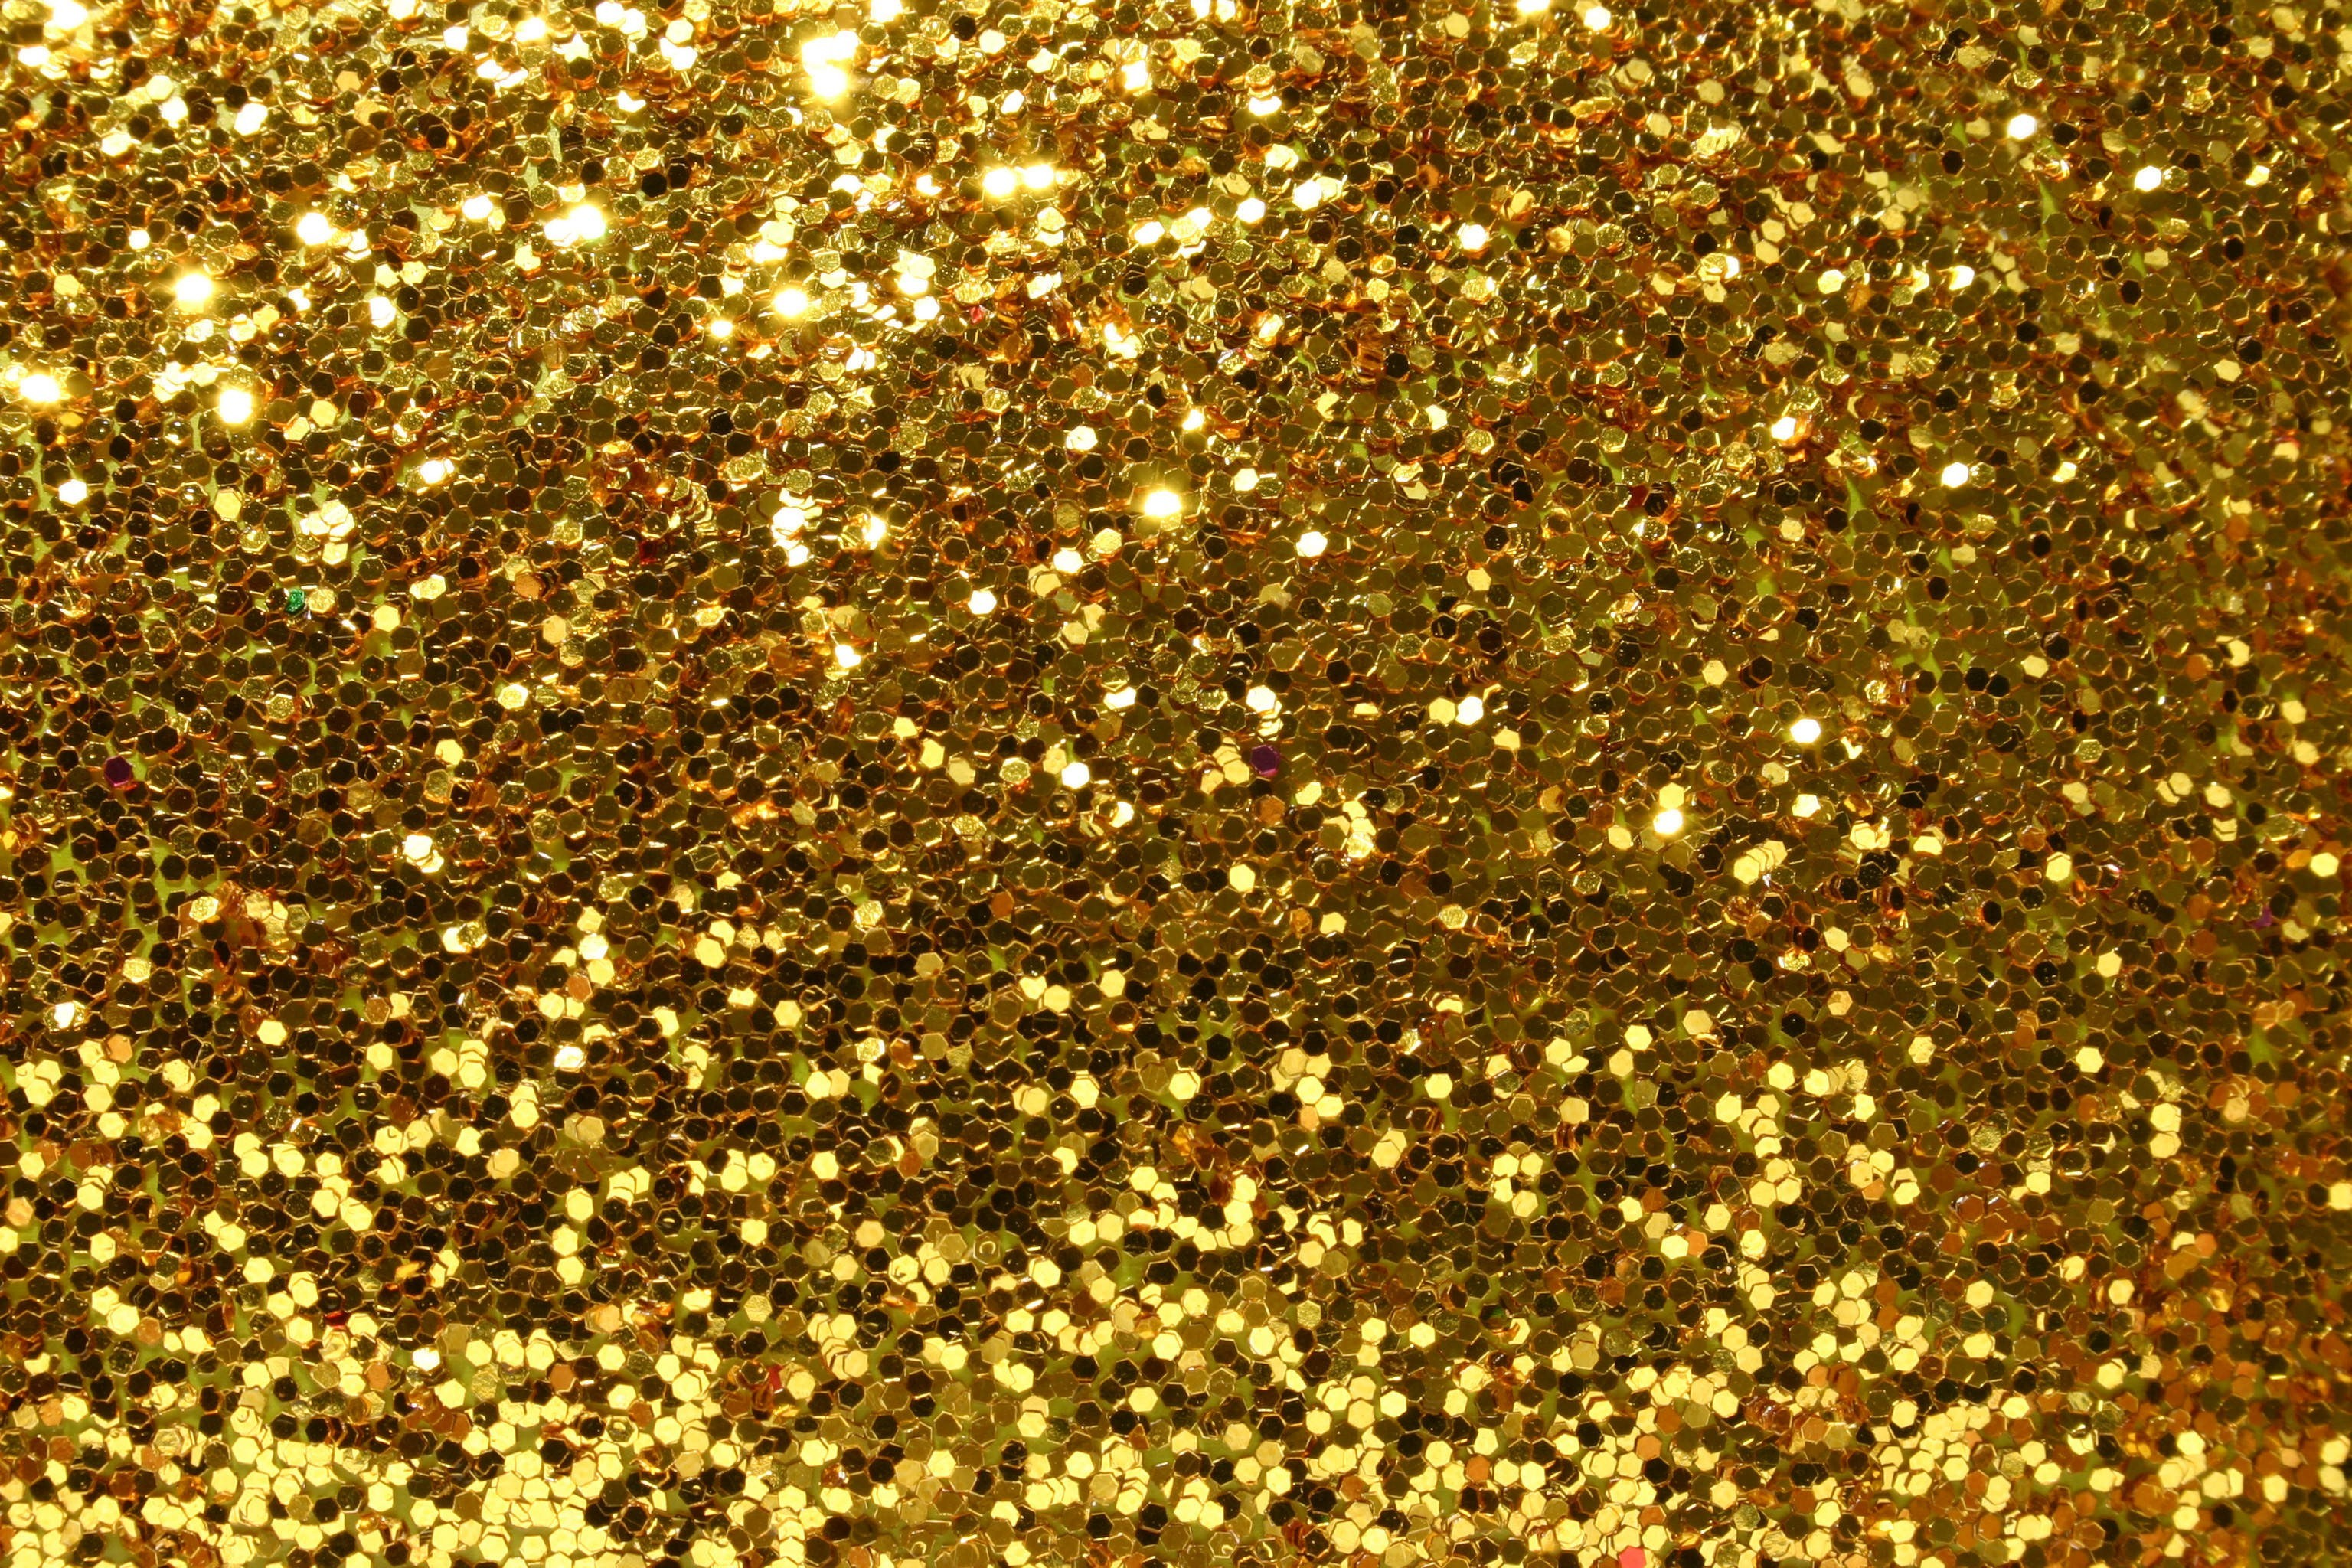 3072x2048 gold glitter background 2048x1536 ios